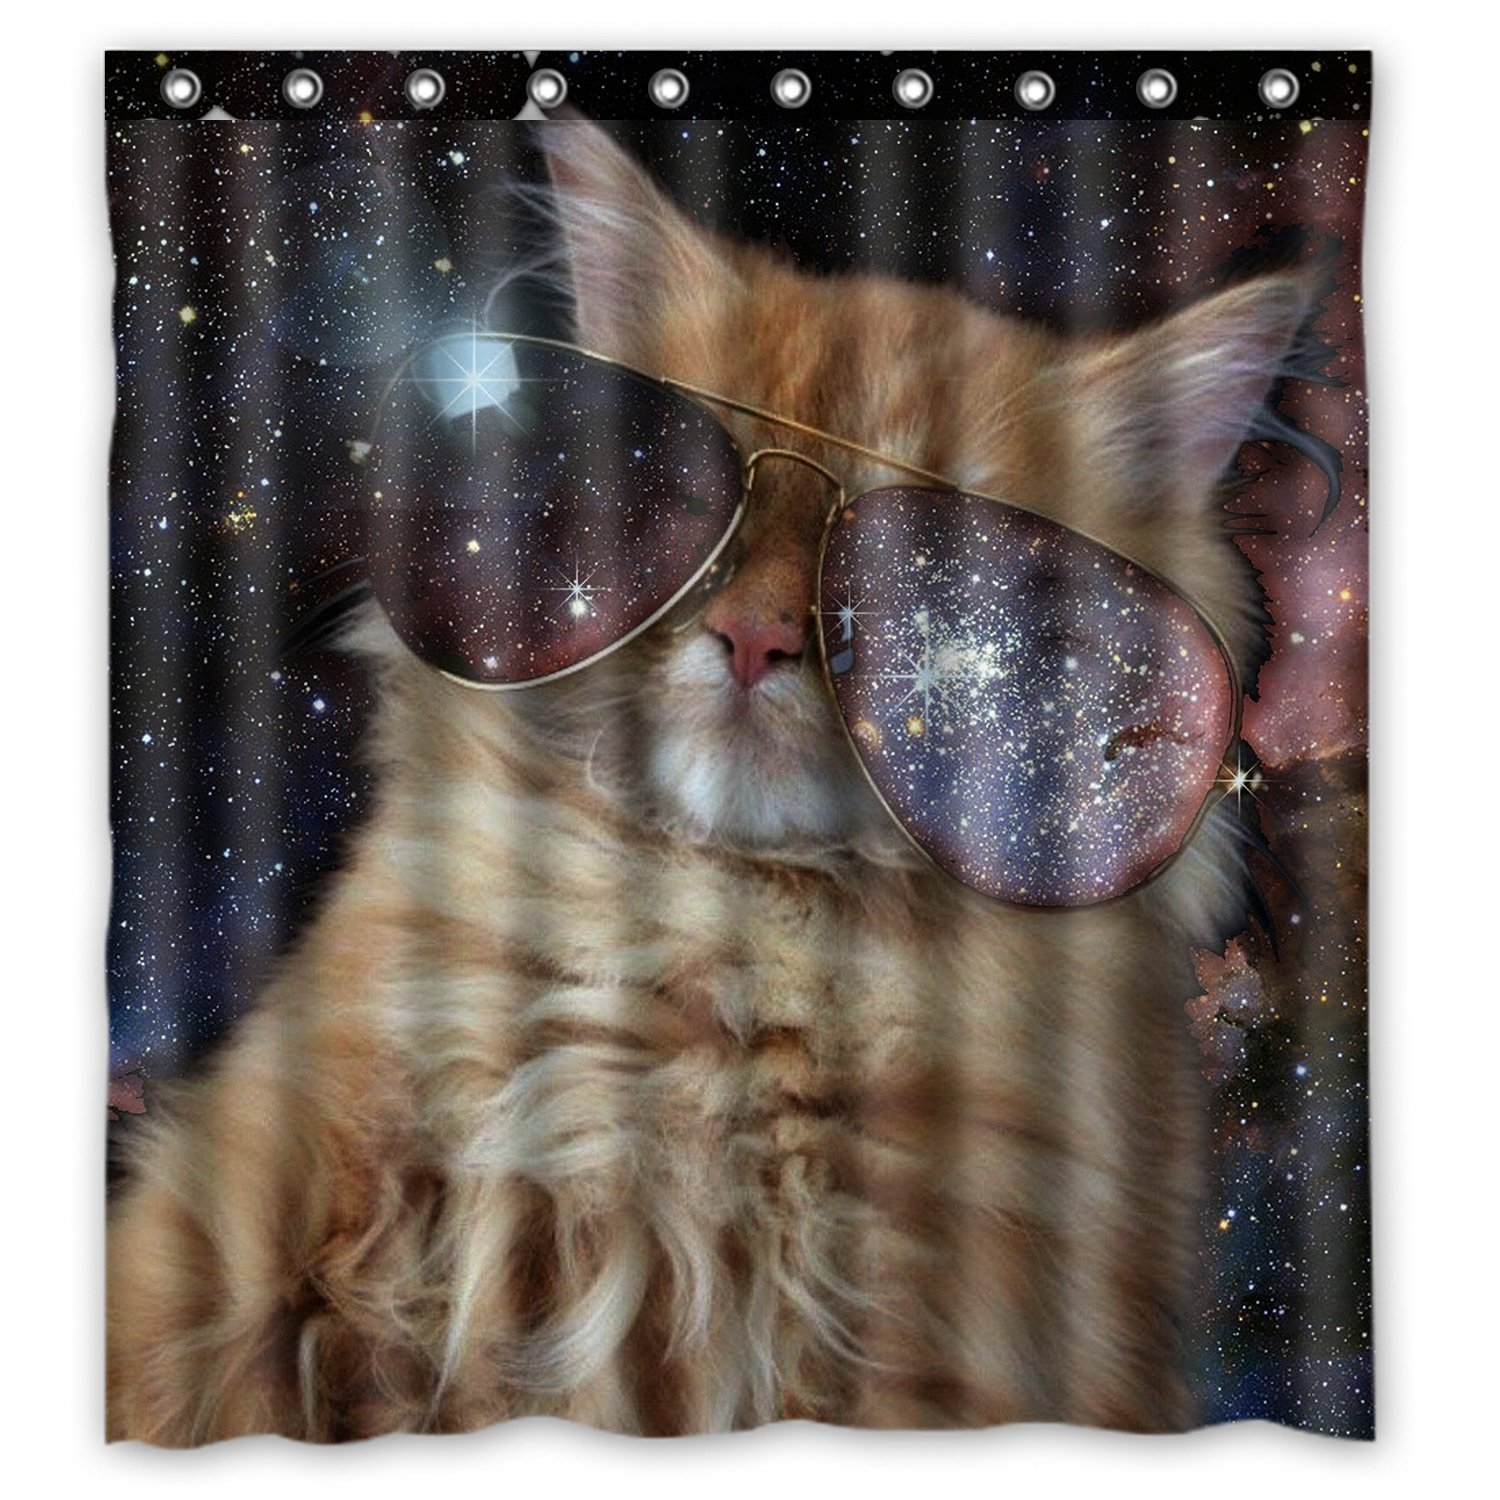 FMSHPON Yellow Cat with Sunglasses Waterproof Polyester Fabric Bathroom Shower Curtain Size 66 X72 Inches